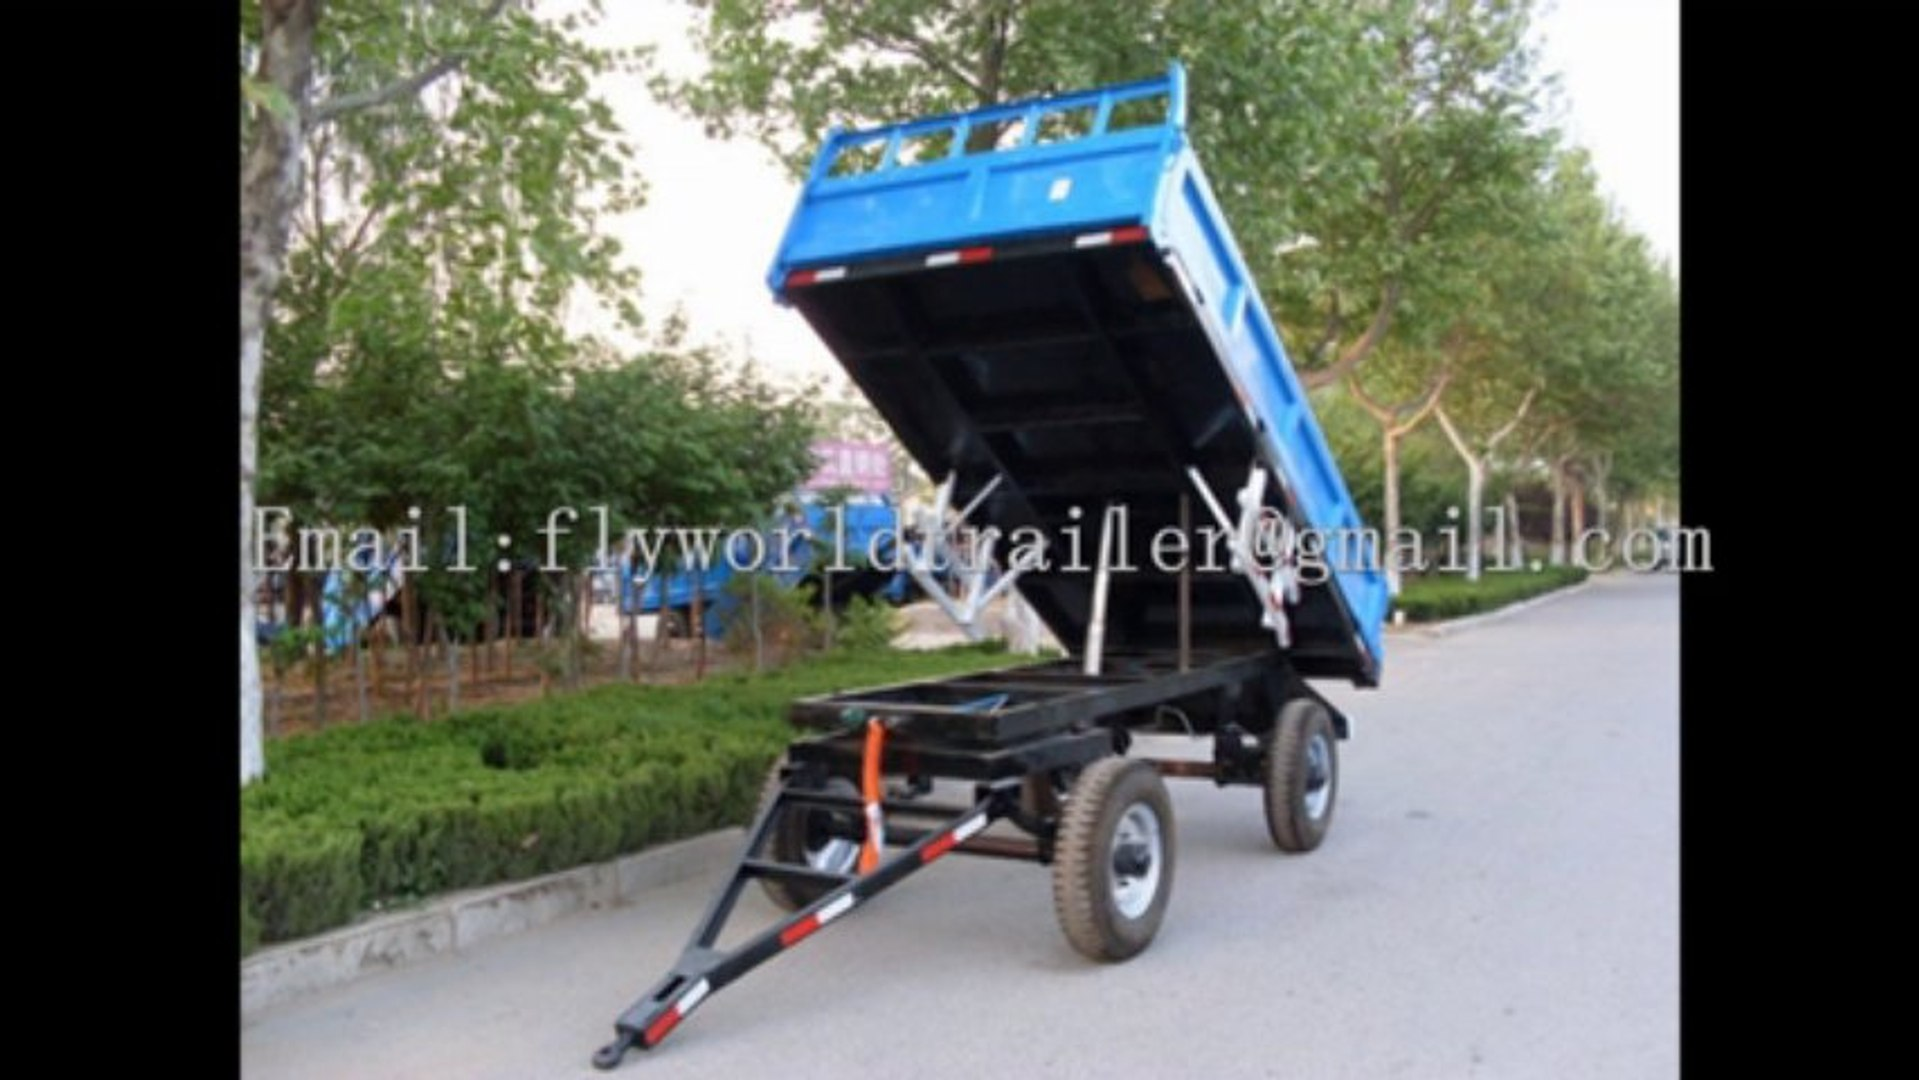 Trailer and trailer accessories china supplier (accept OEM/ODM) (container trailer)